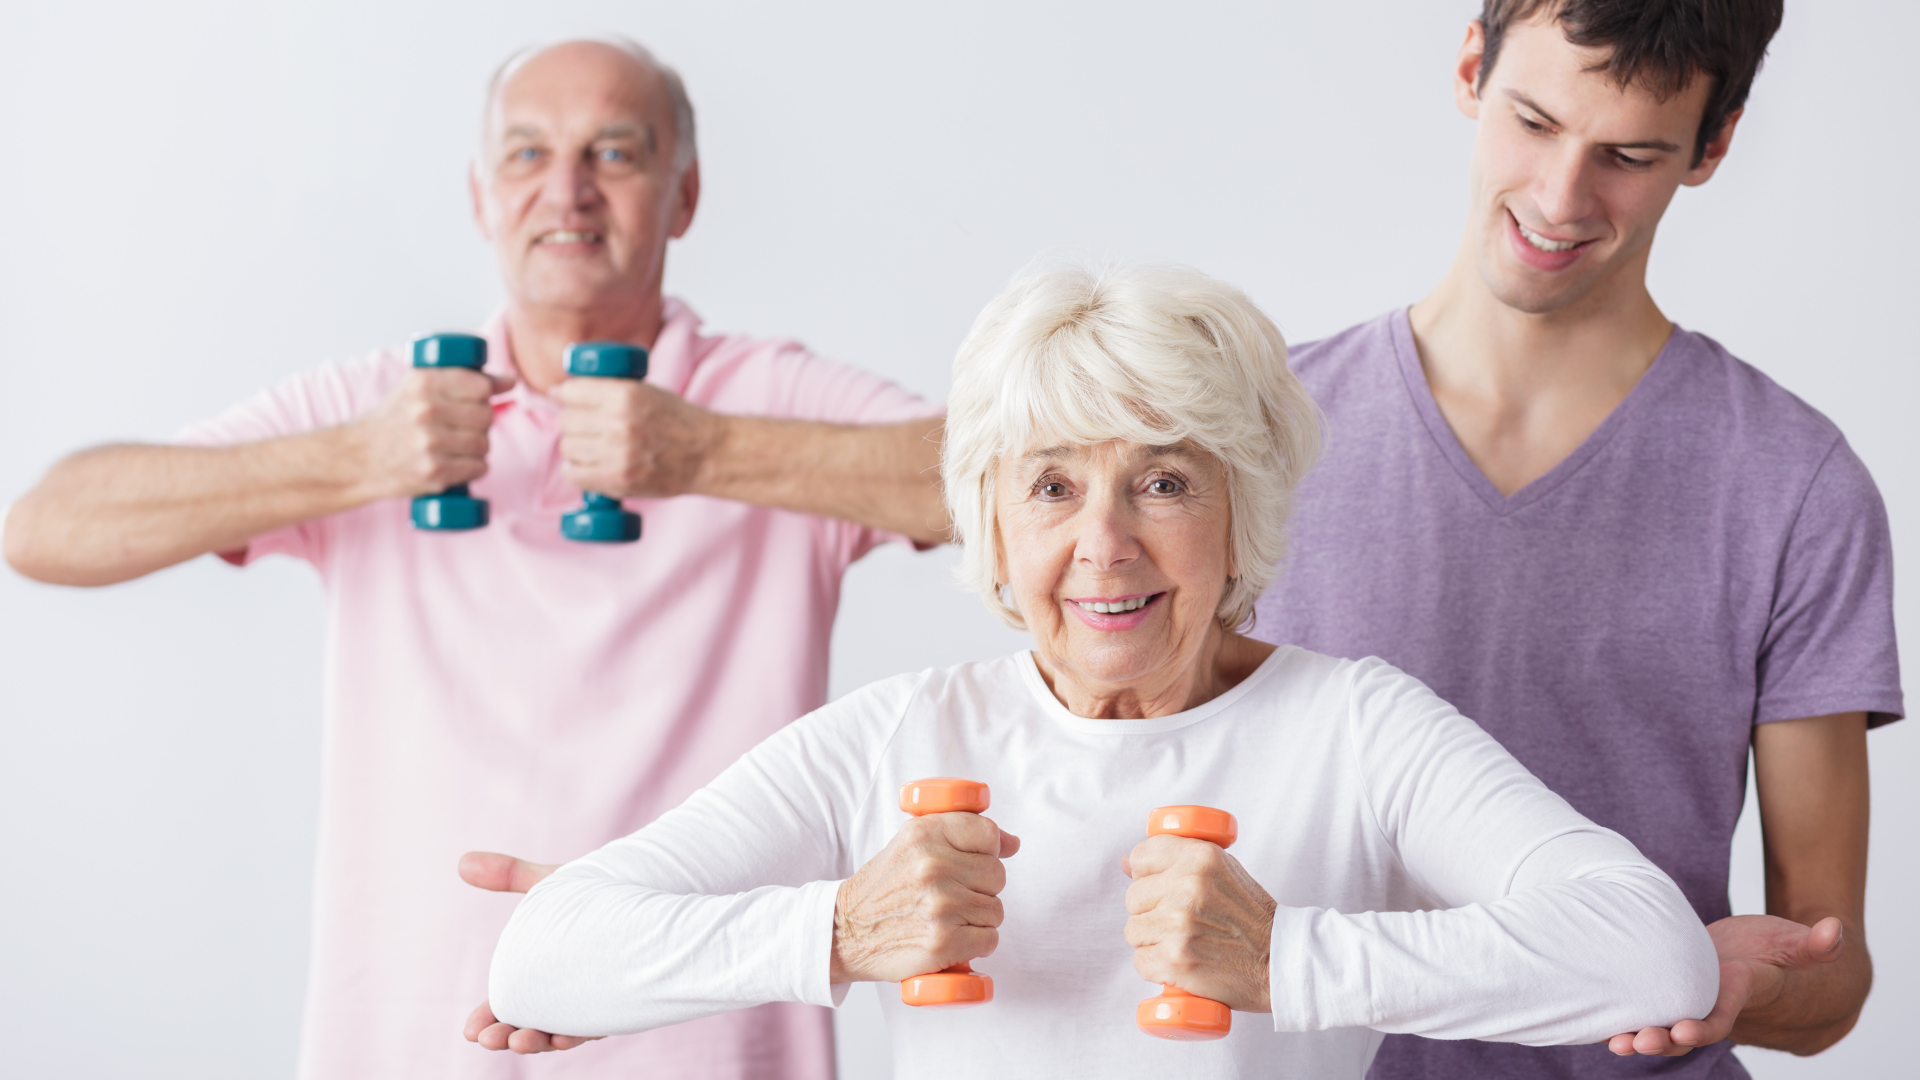 10 Tips on how to motivate patients in physical therapy